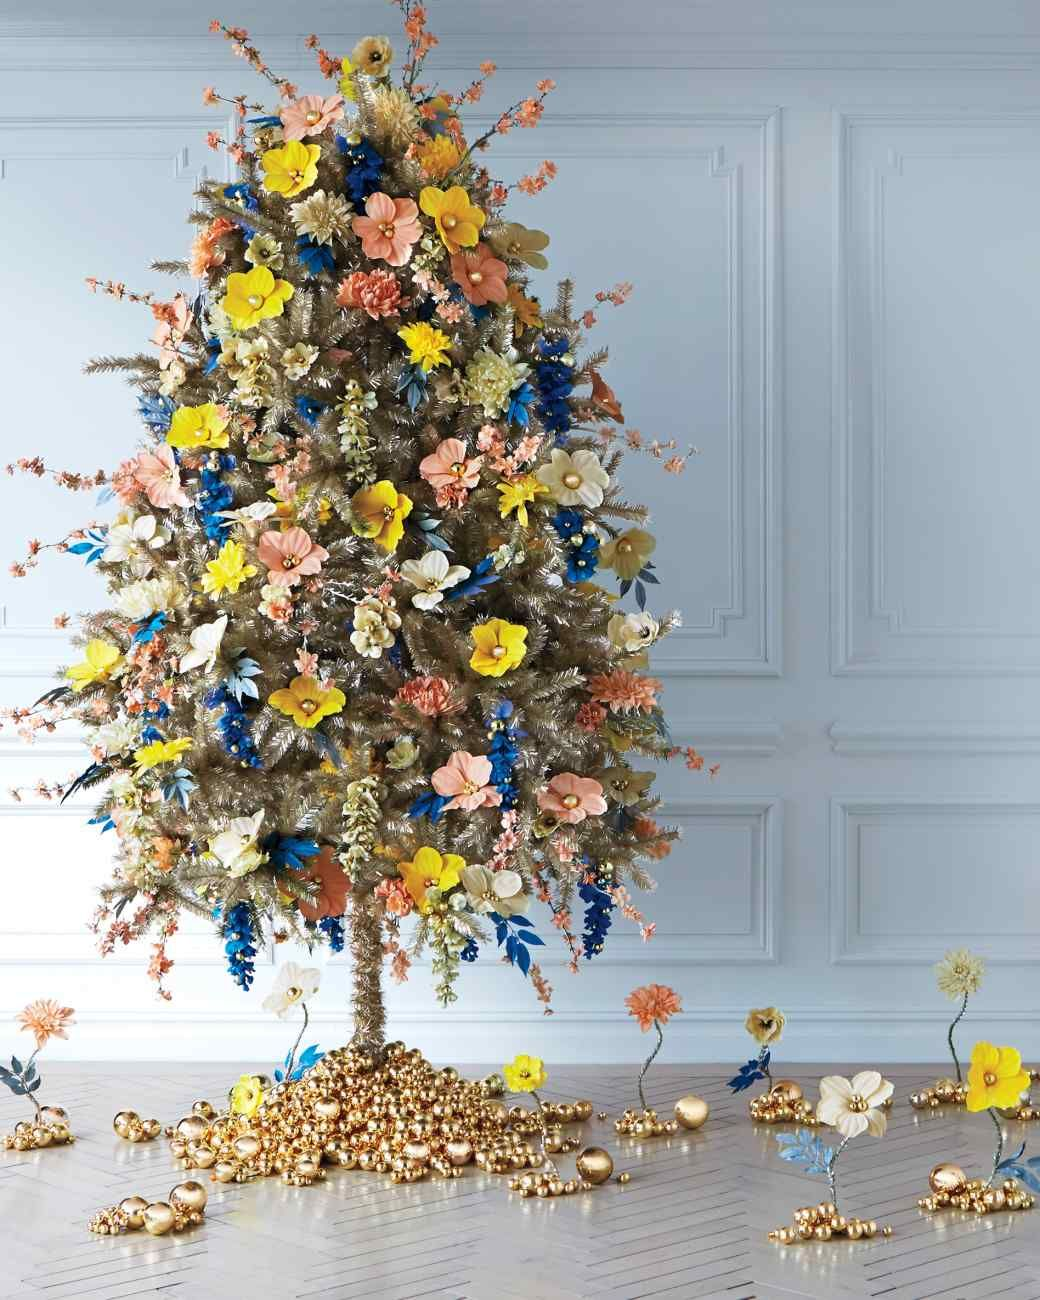 Uncategorized How To Make A Fairy For The Christmas Tree enchanted forest christmas tree ideas by martha stewart living editors